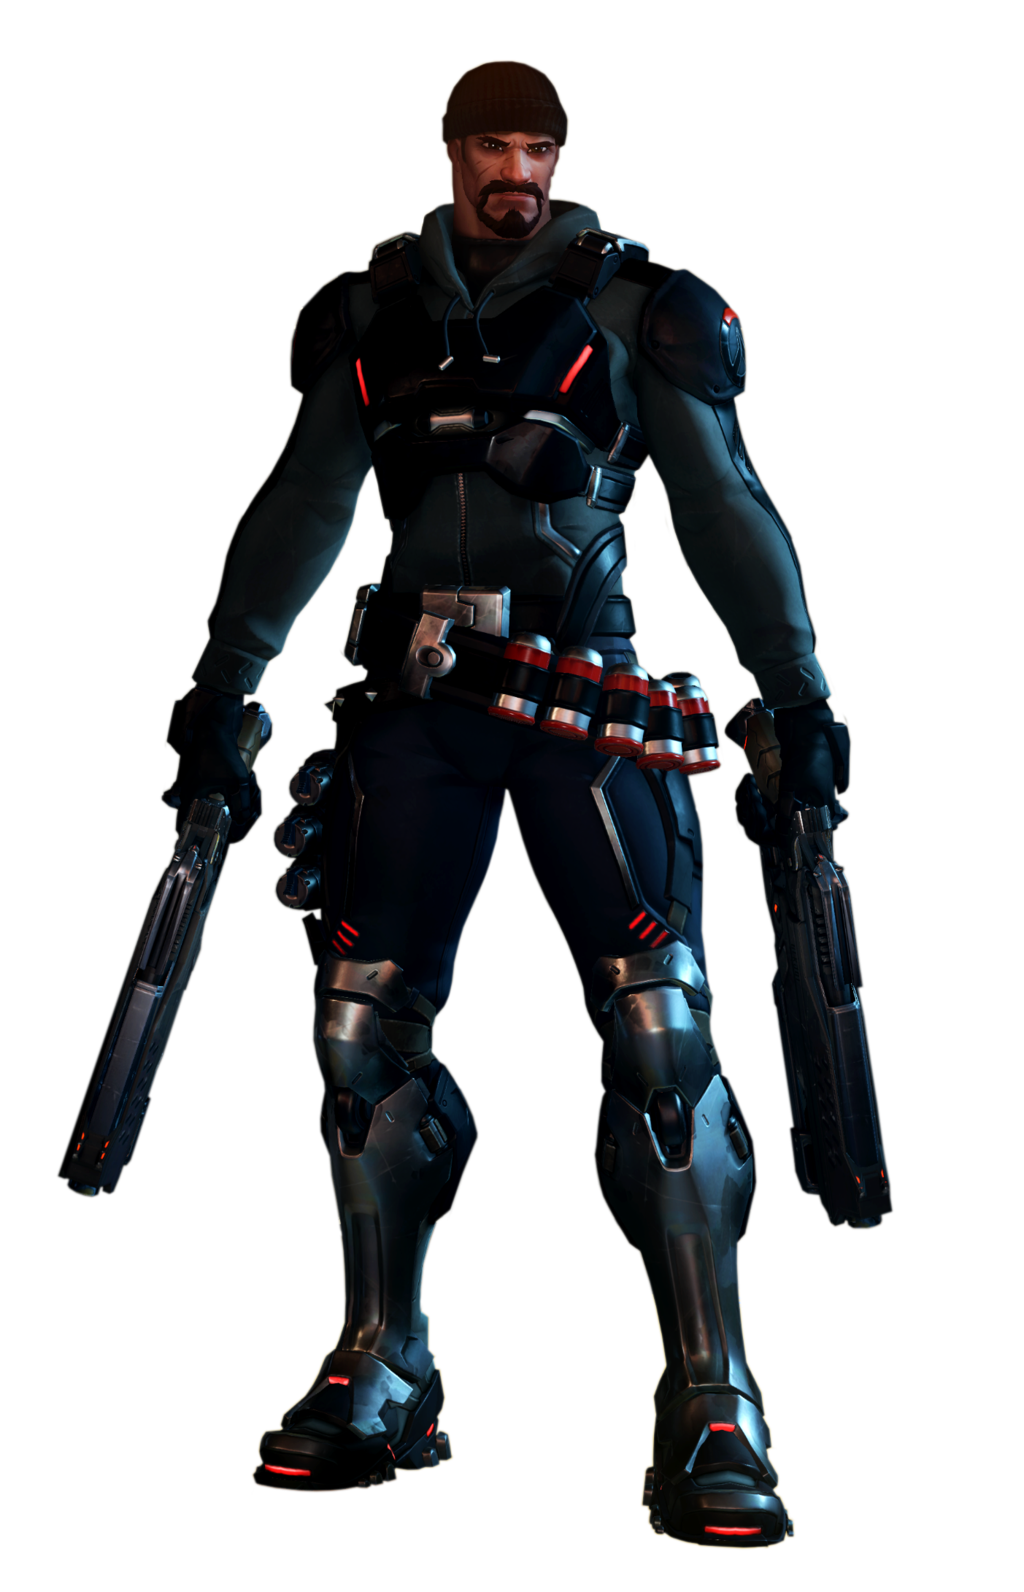 blackwatch reyes render. Reaper overwatch png